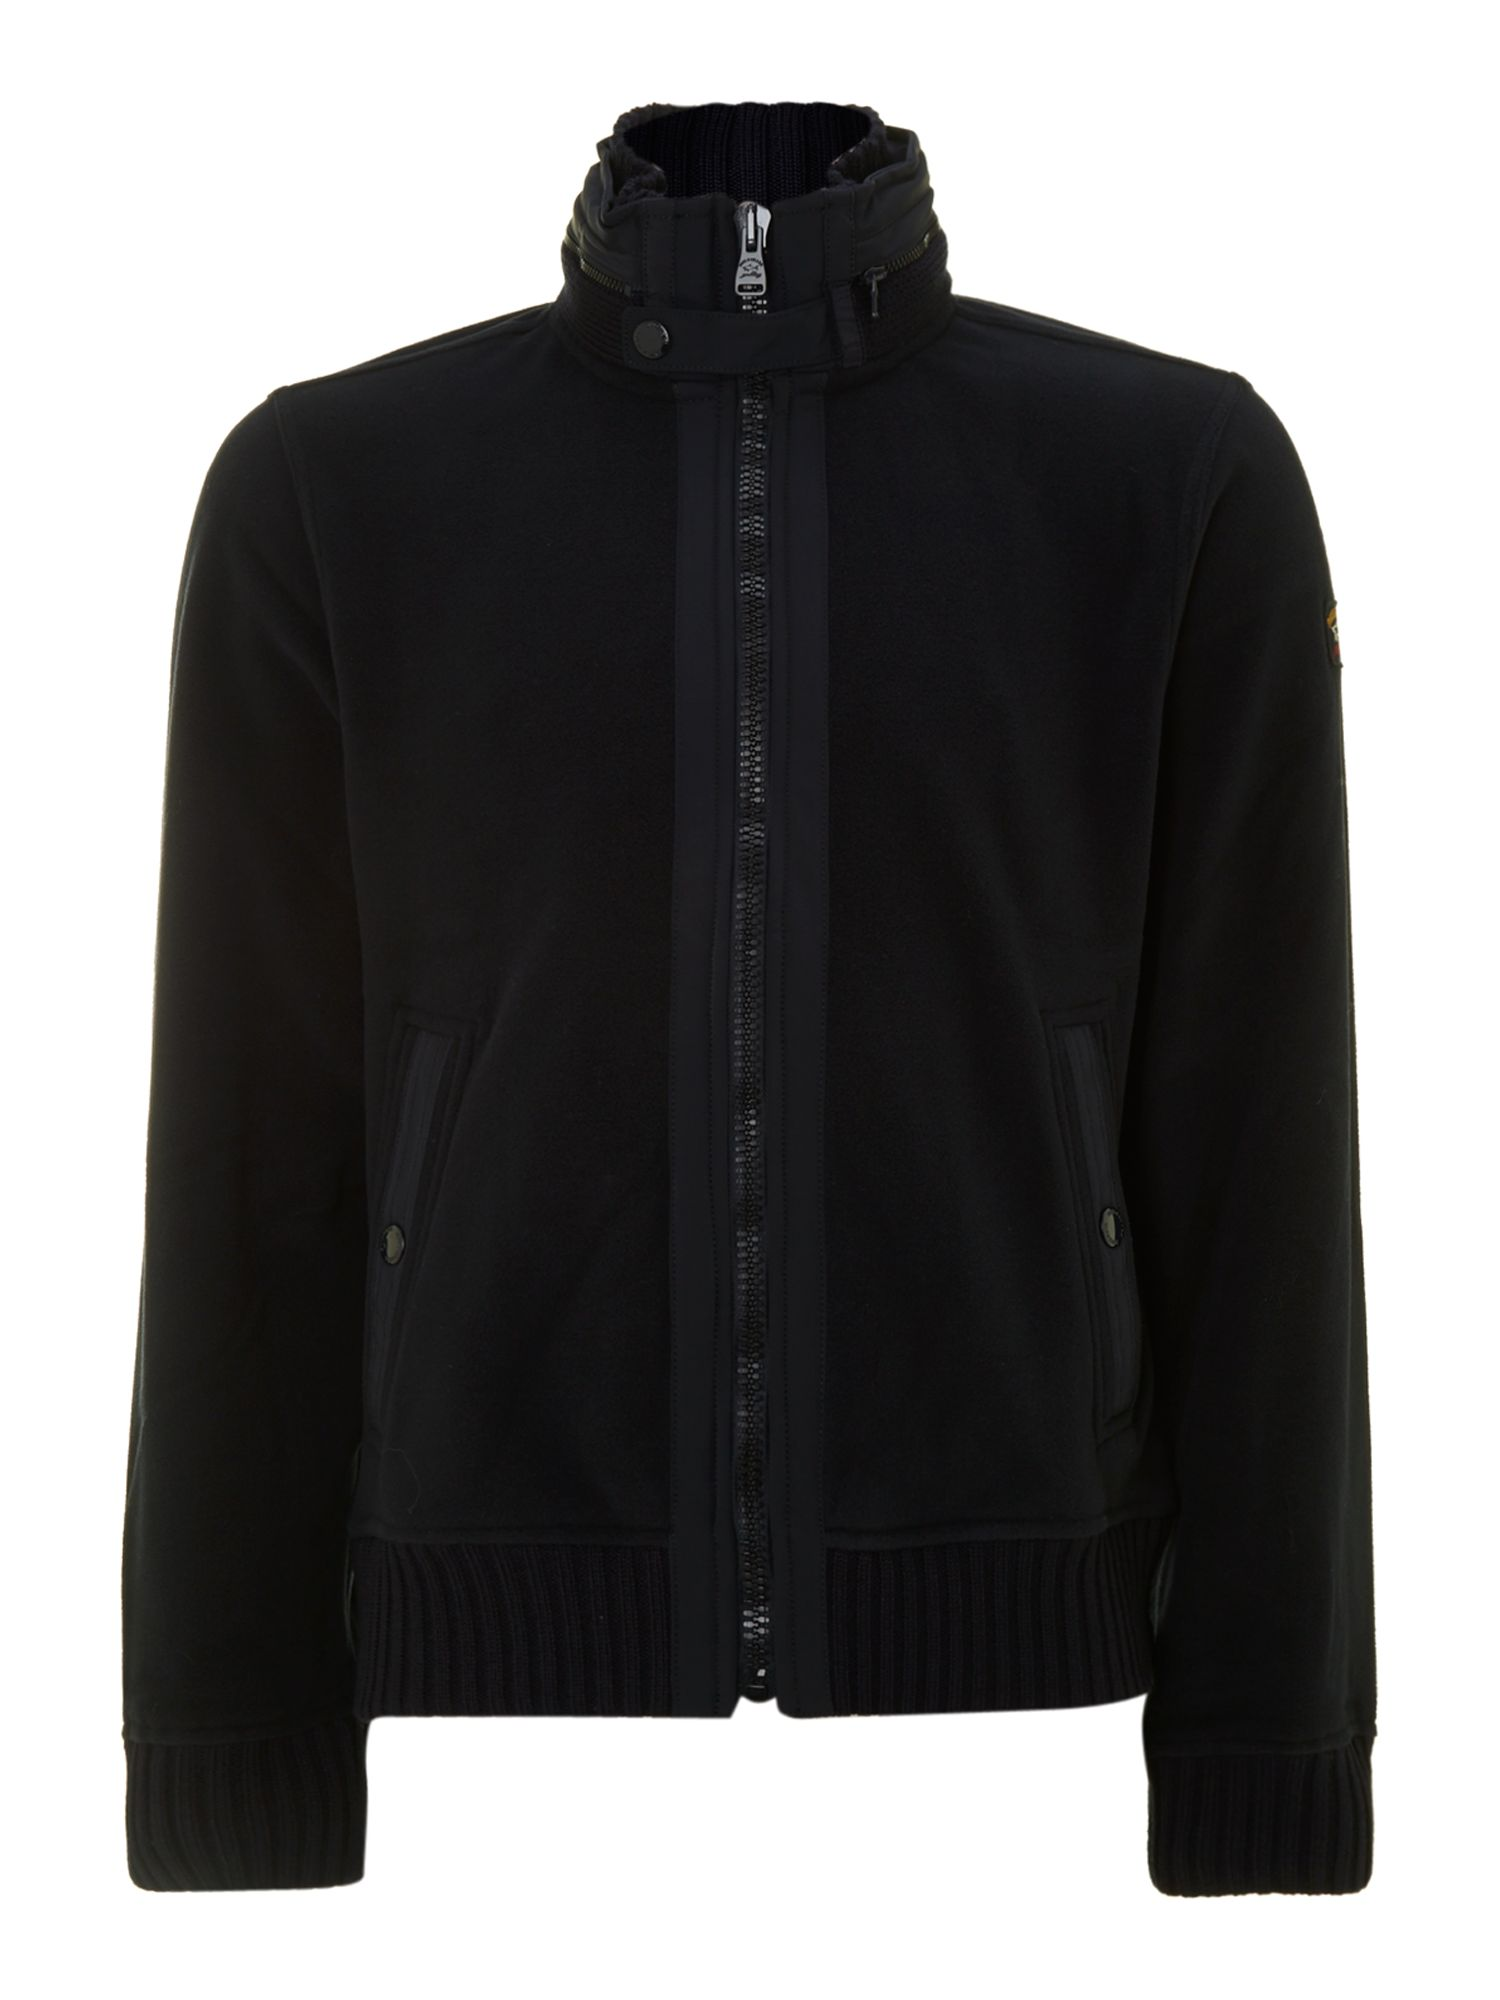 Hideaway hooded zip through sweatshirt